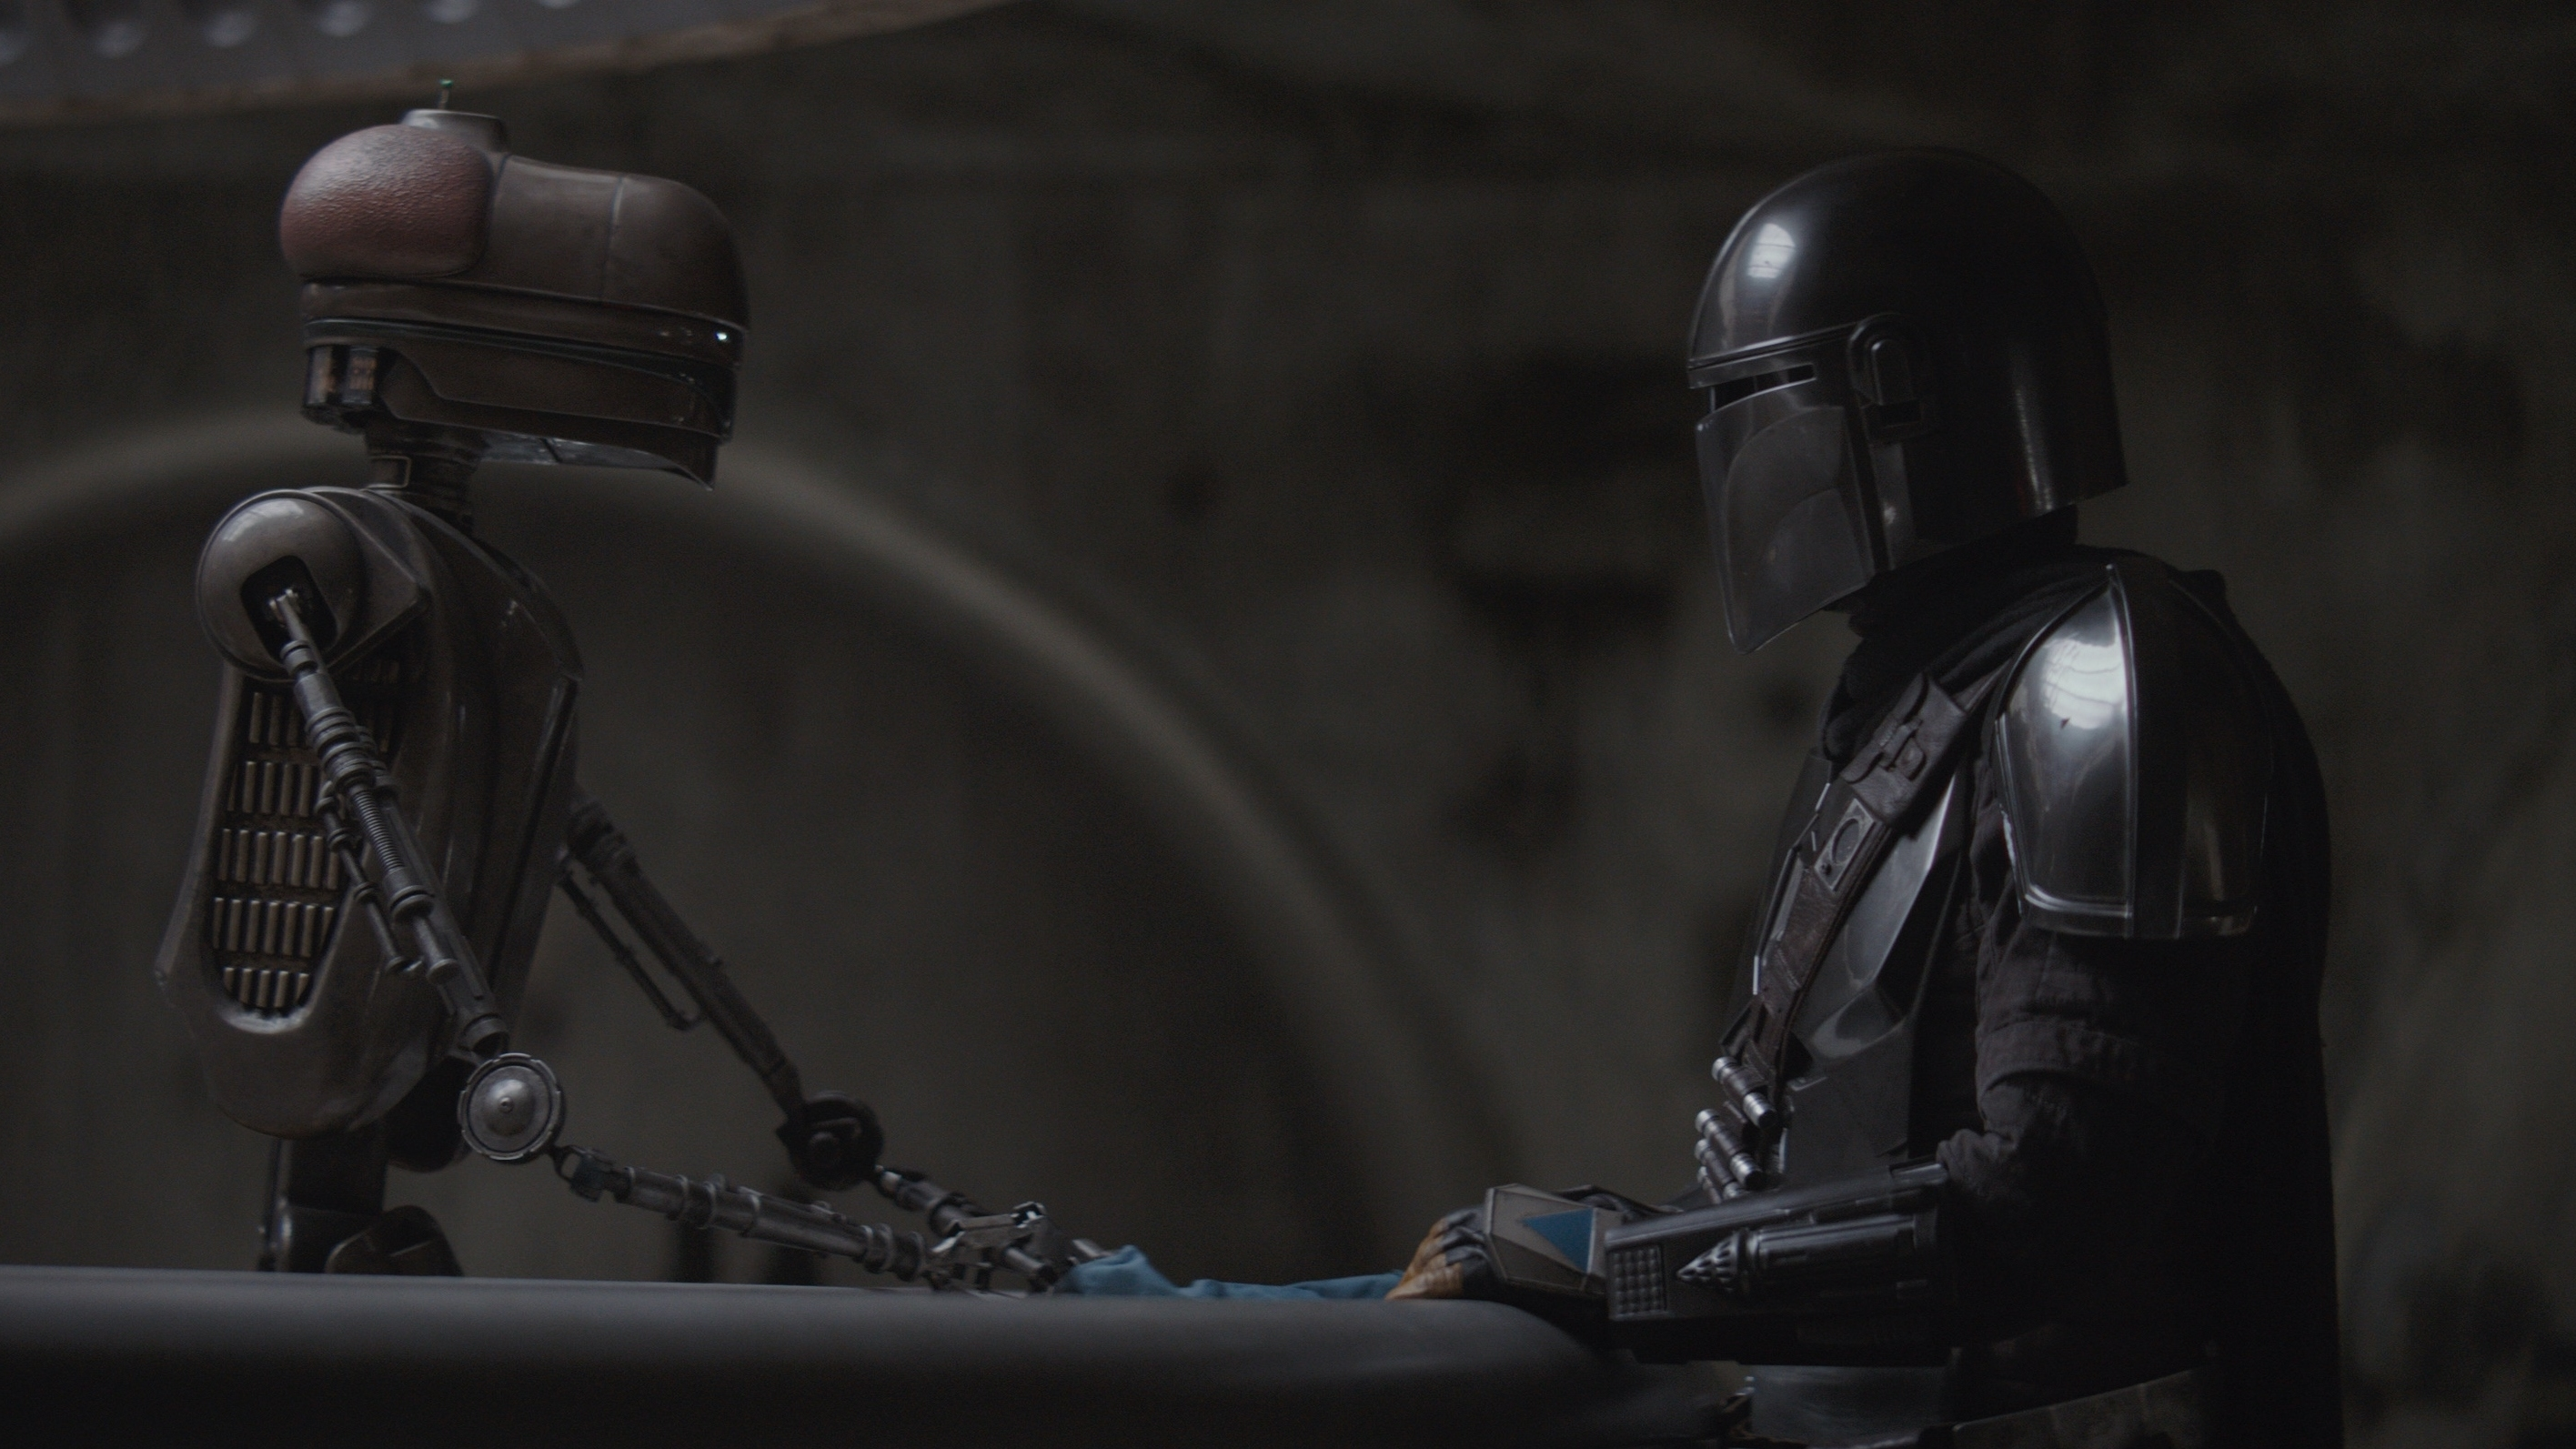 The-Mandalorian-Star-Wars-Serien-Blog-Bericht-Mando-und-Roboter-in-Cantina-Bar